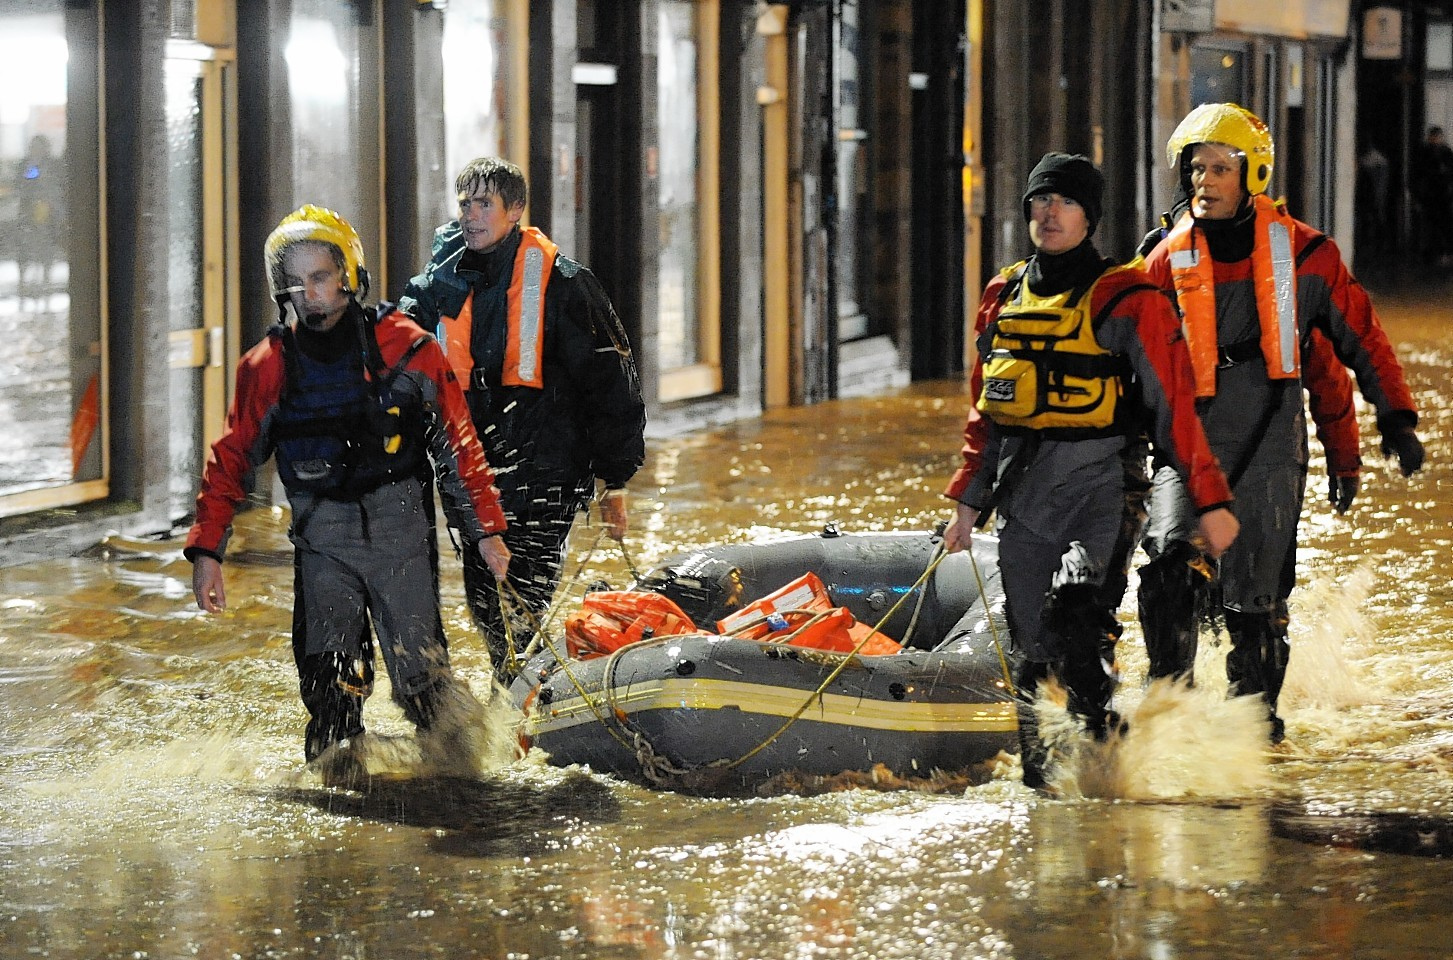 Homes were devastated in Stonehaven in 2009 and 2012 when the river burst its banks